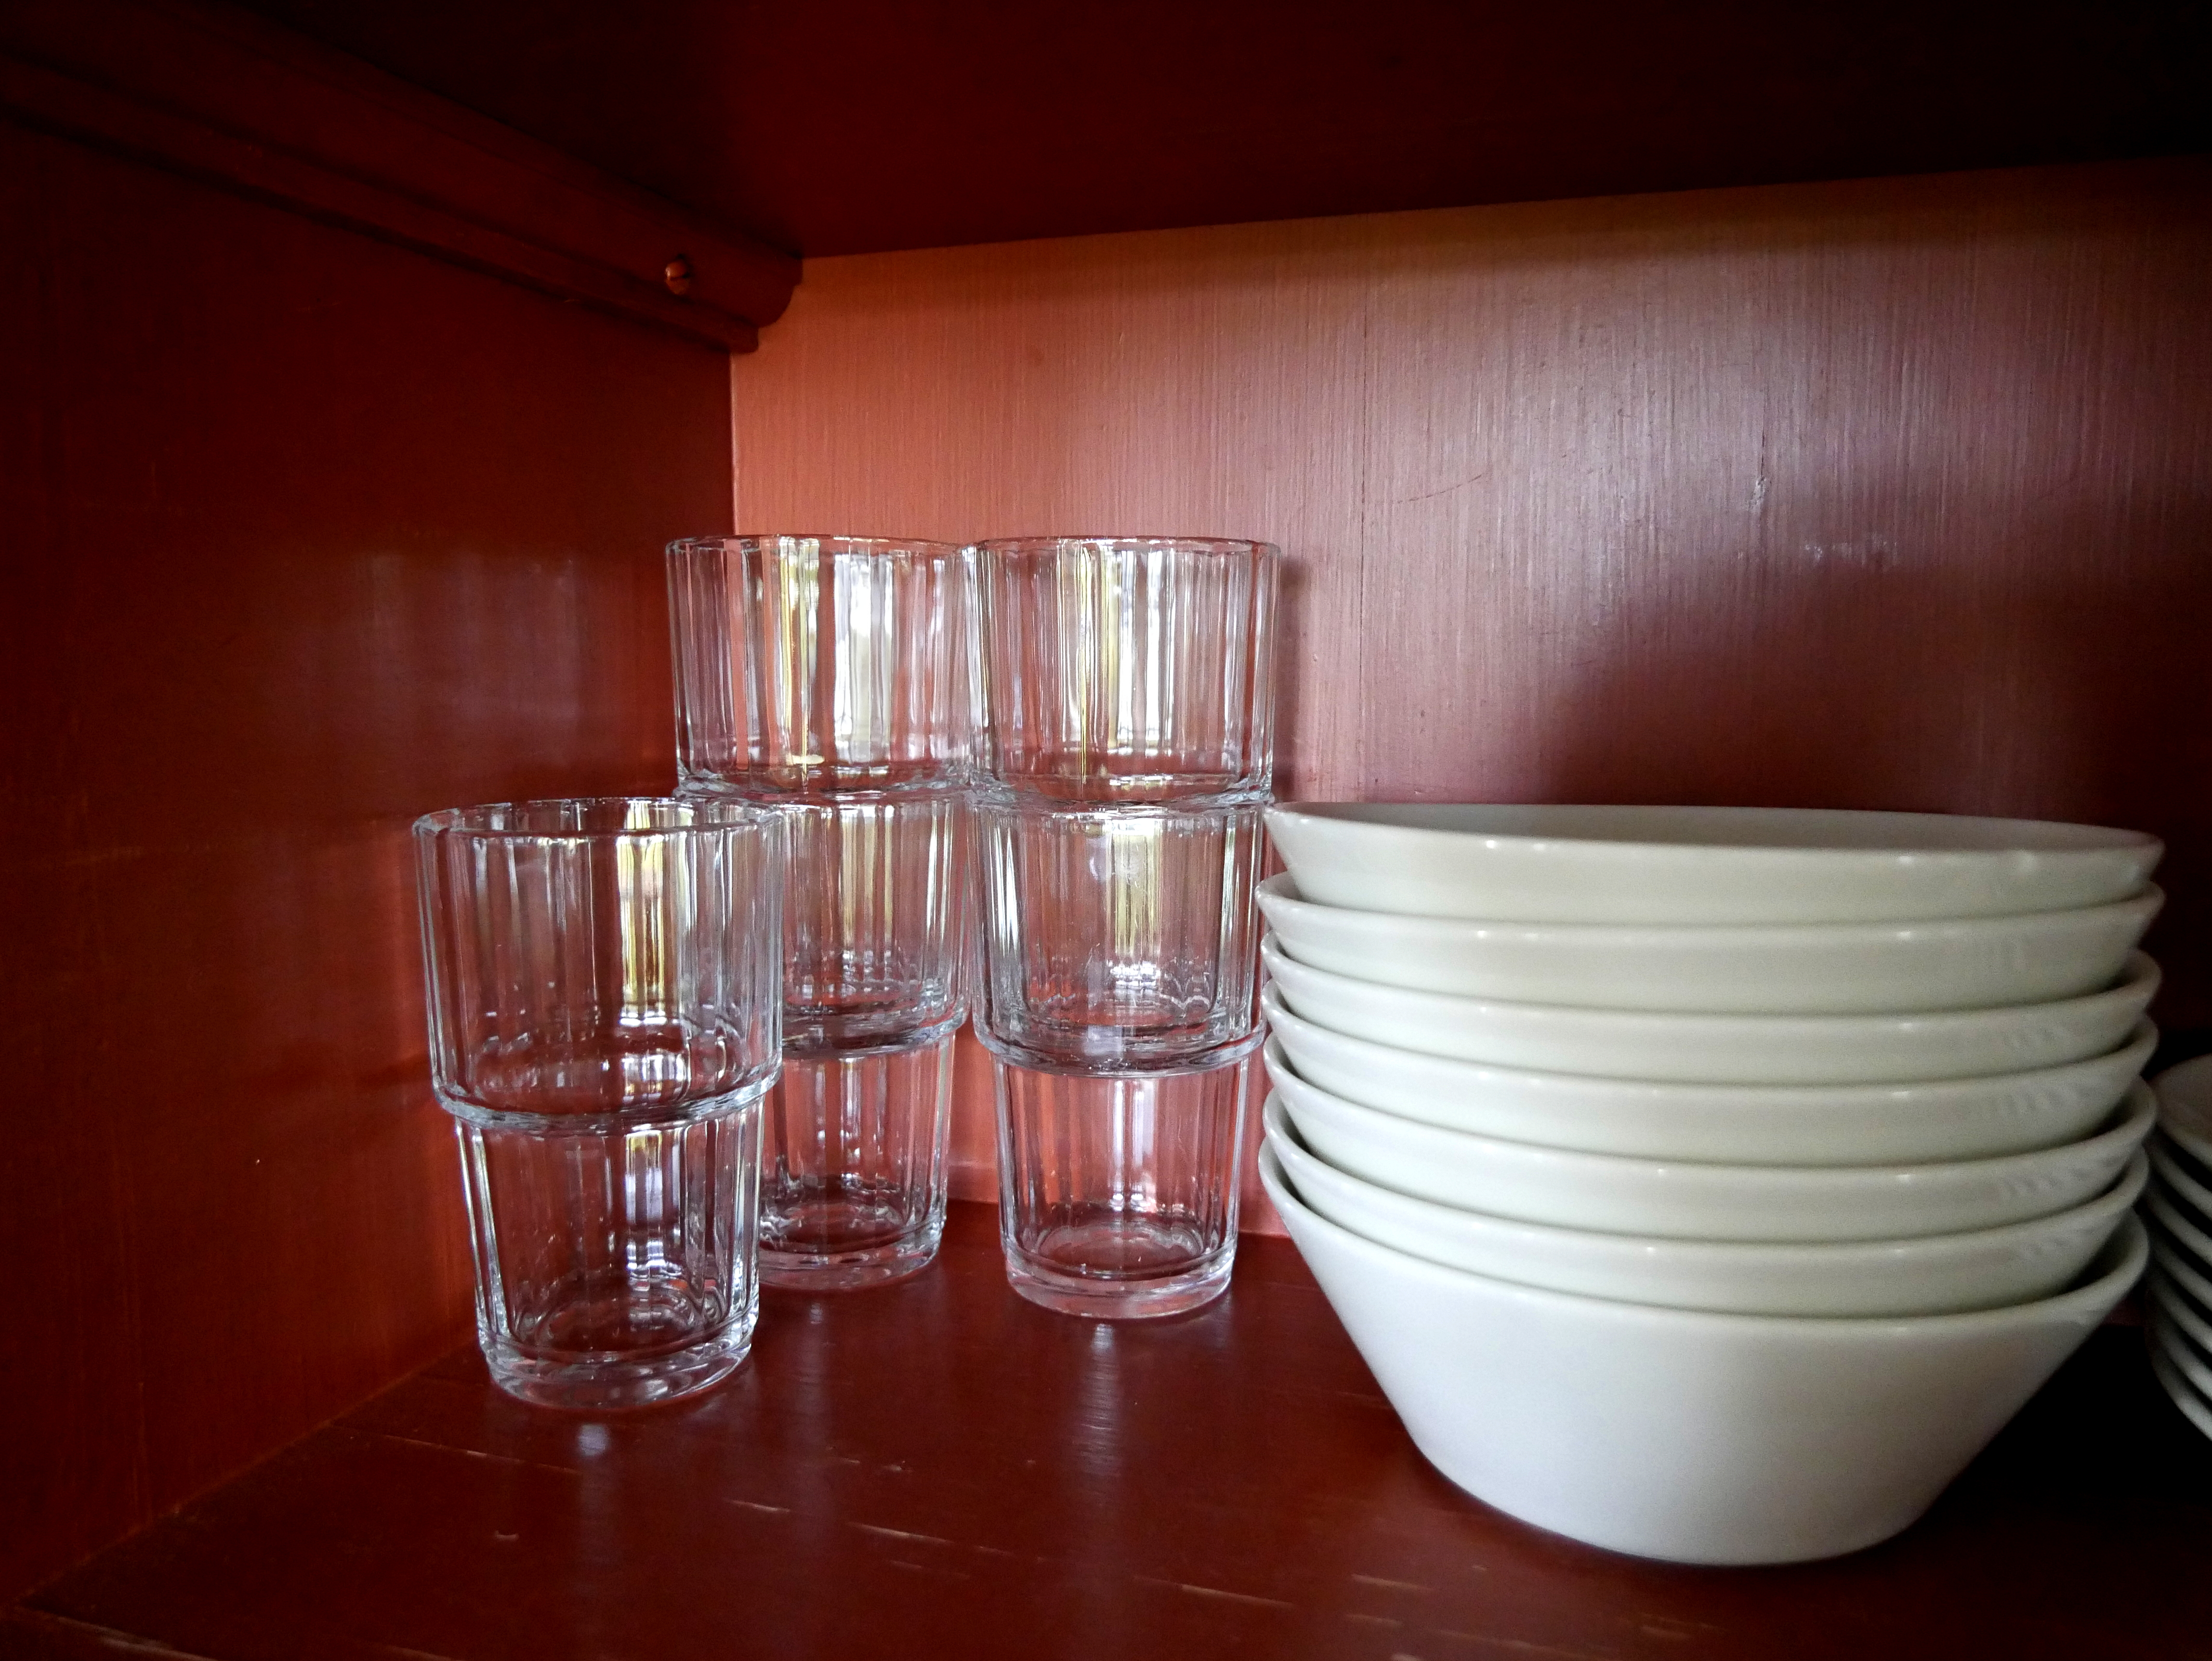 File:Drinking glasses and plates in kitchen cupboard ...